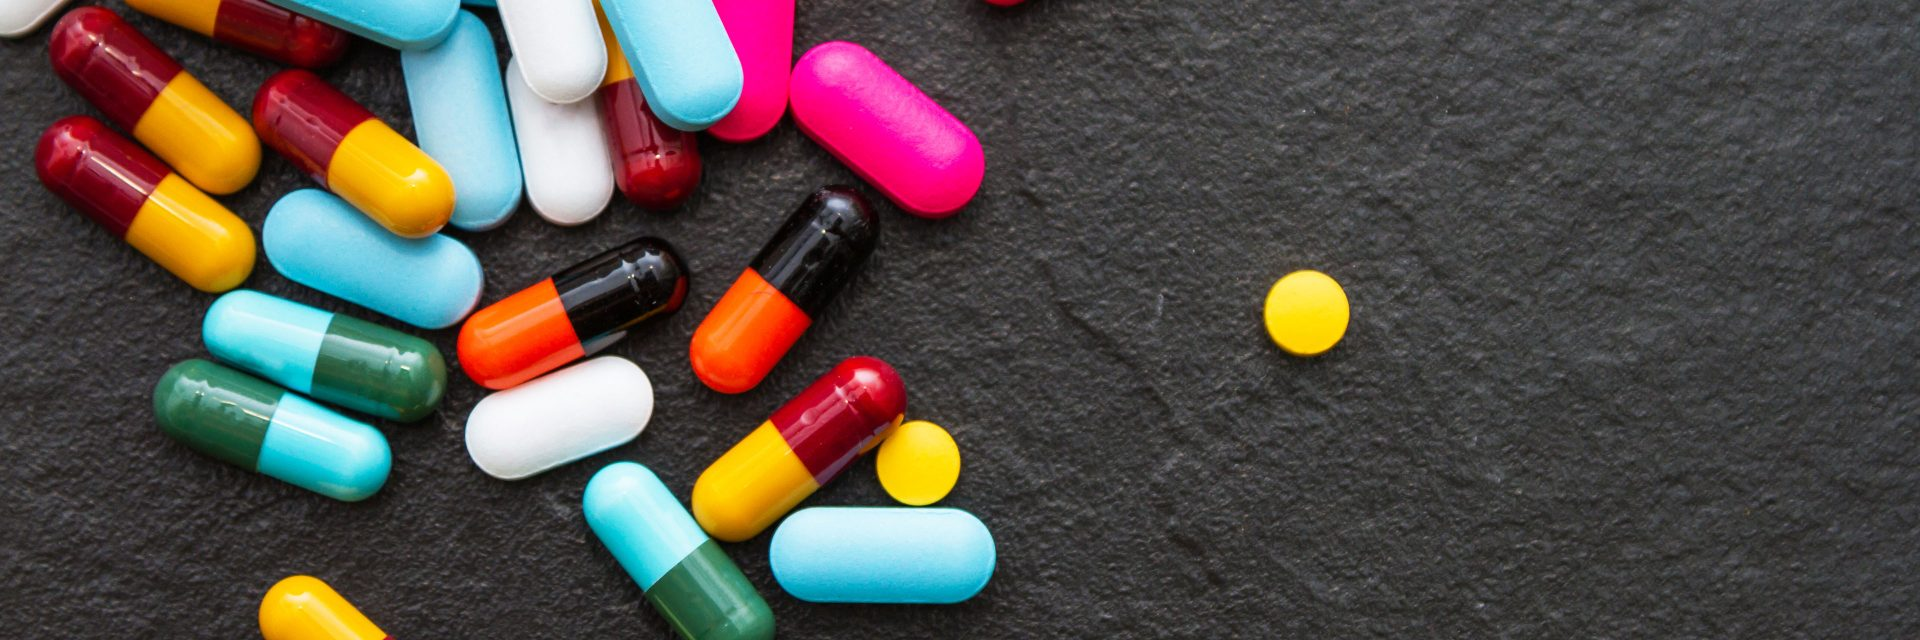 Ask an Expert - Designing an OSD Facility to Protect Drug Products